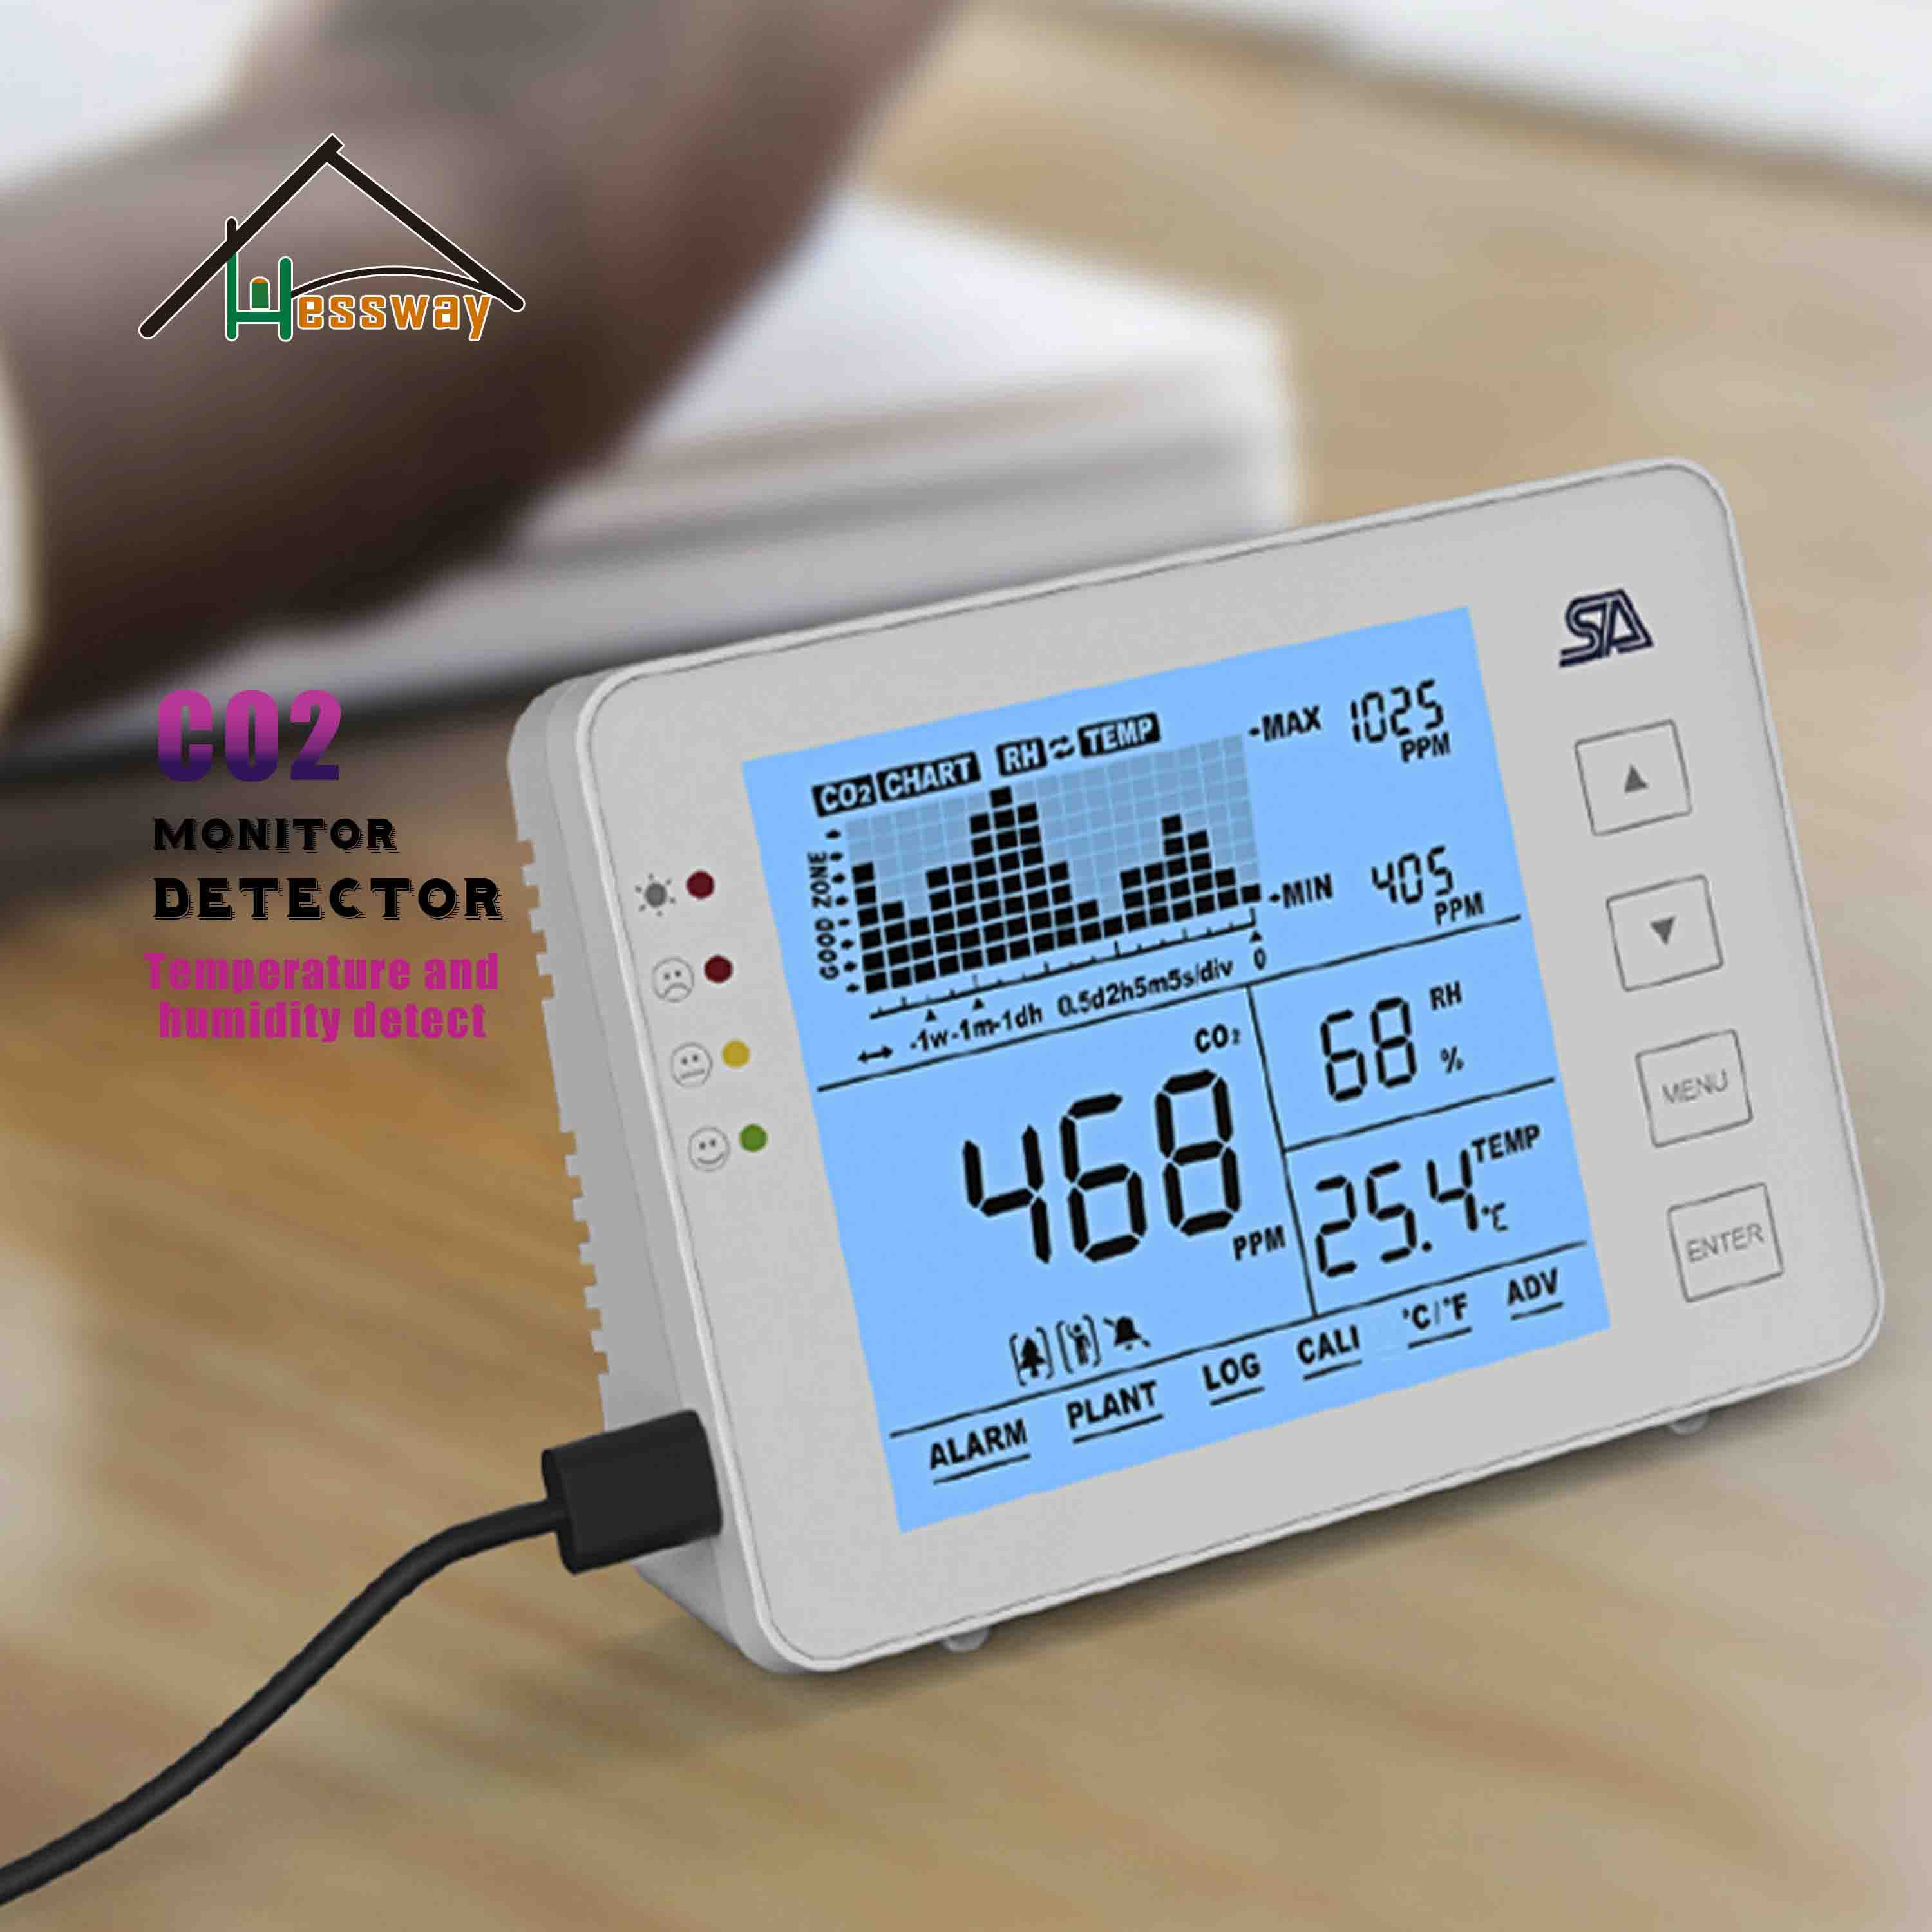 HESSWAY NDIR Air Quality Sensor Co2 Carbon Dioxide Monitor Detector Recall Function For 3 In 1 Temperature Humidity Detector